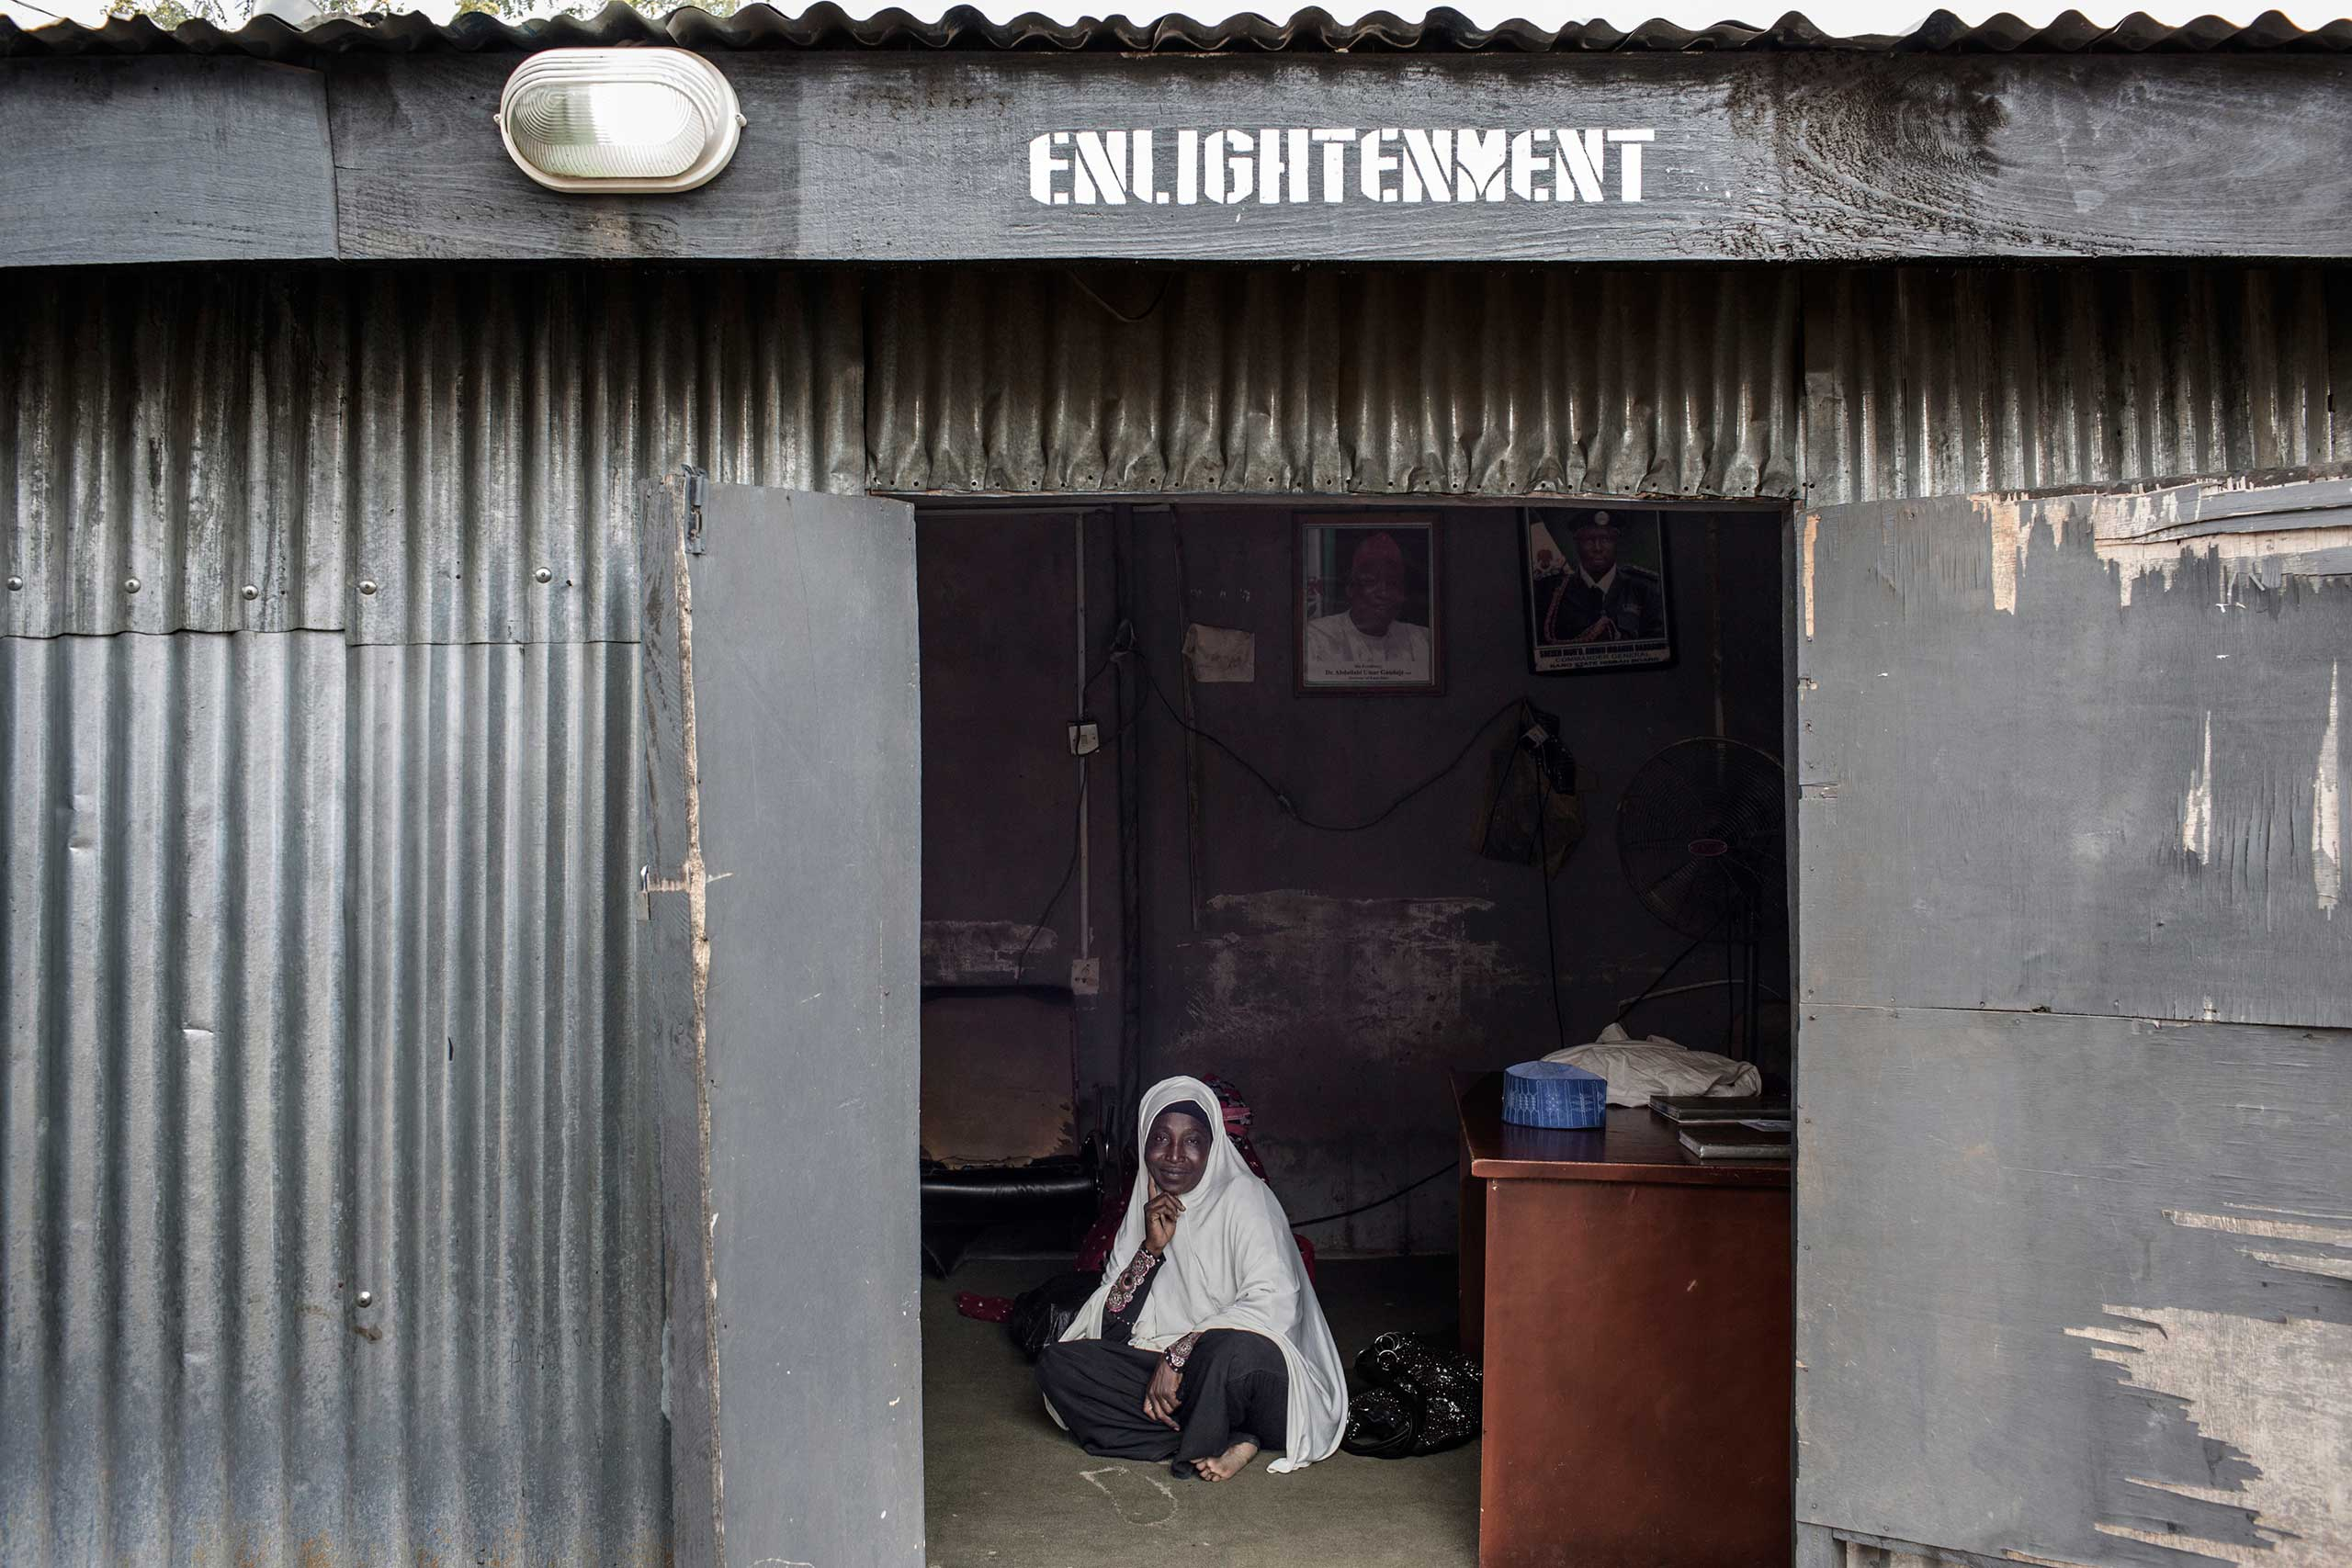 A woman poses for a portrait at the Office of Enlightenment at the Hisbah, the Islamic morality police, Kano, Northern Nigeria, Aug. 17, 2015.